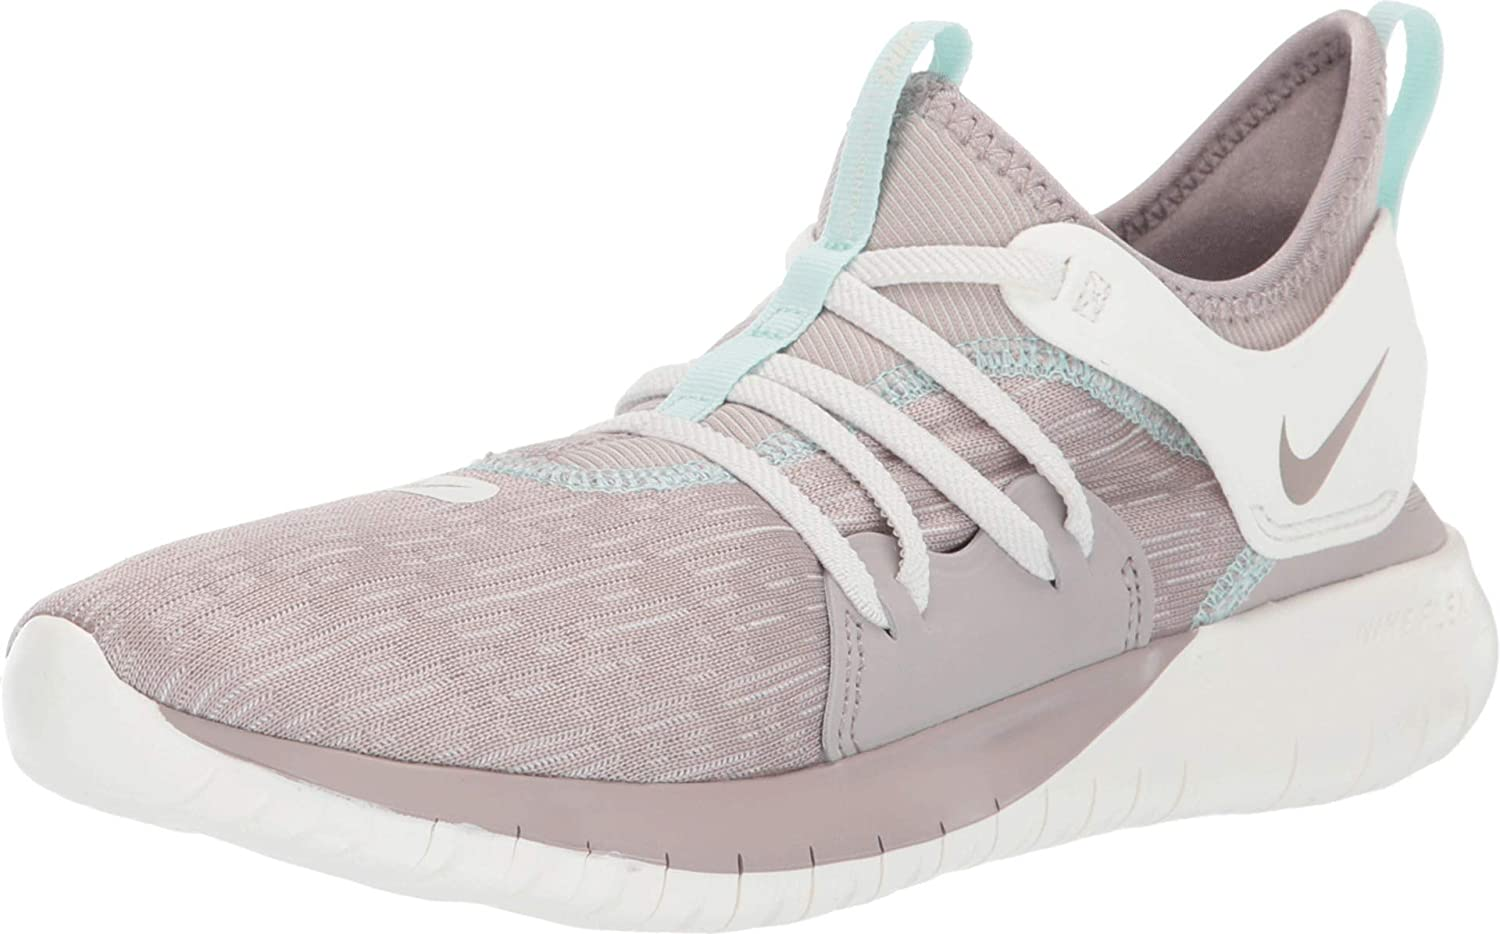 Nike Men's Competition Running Shoe